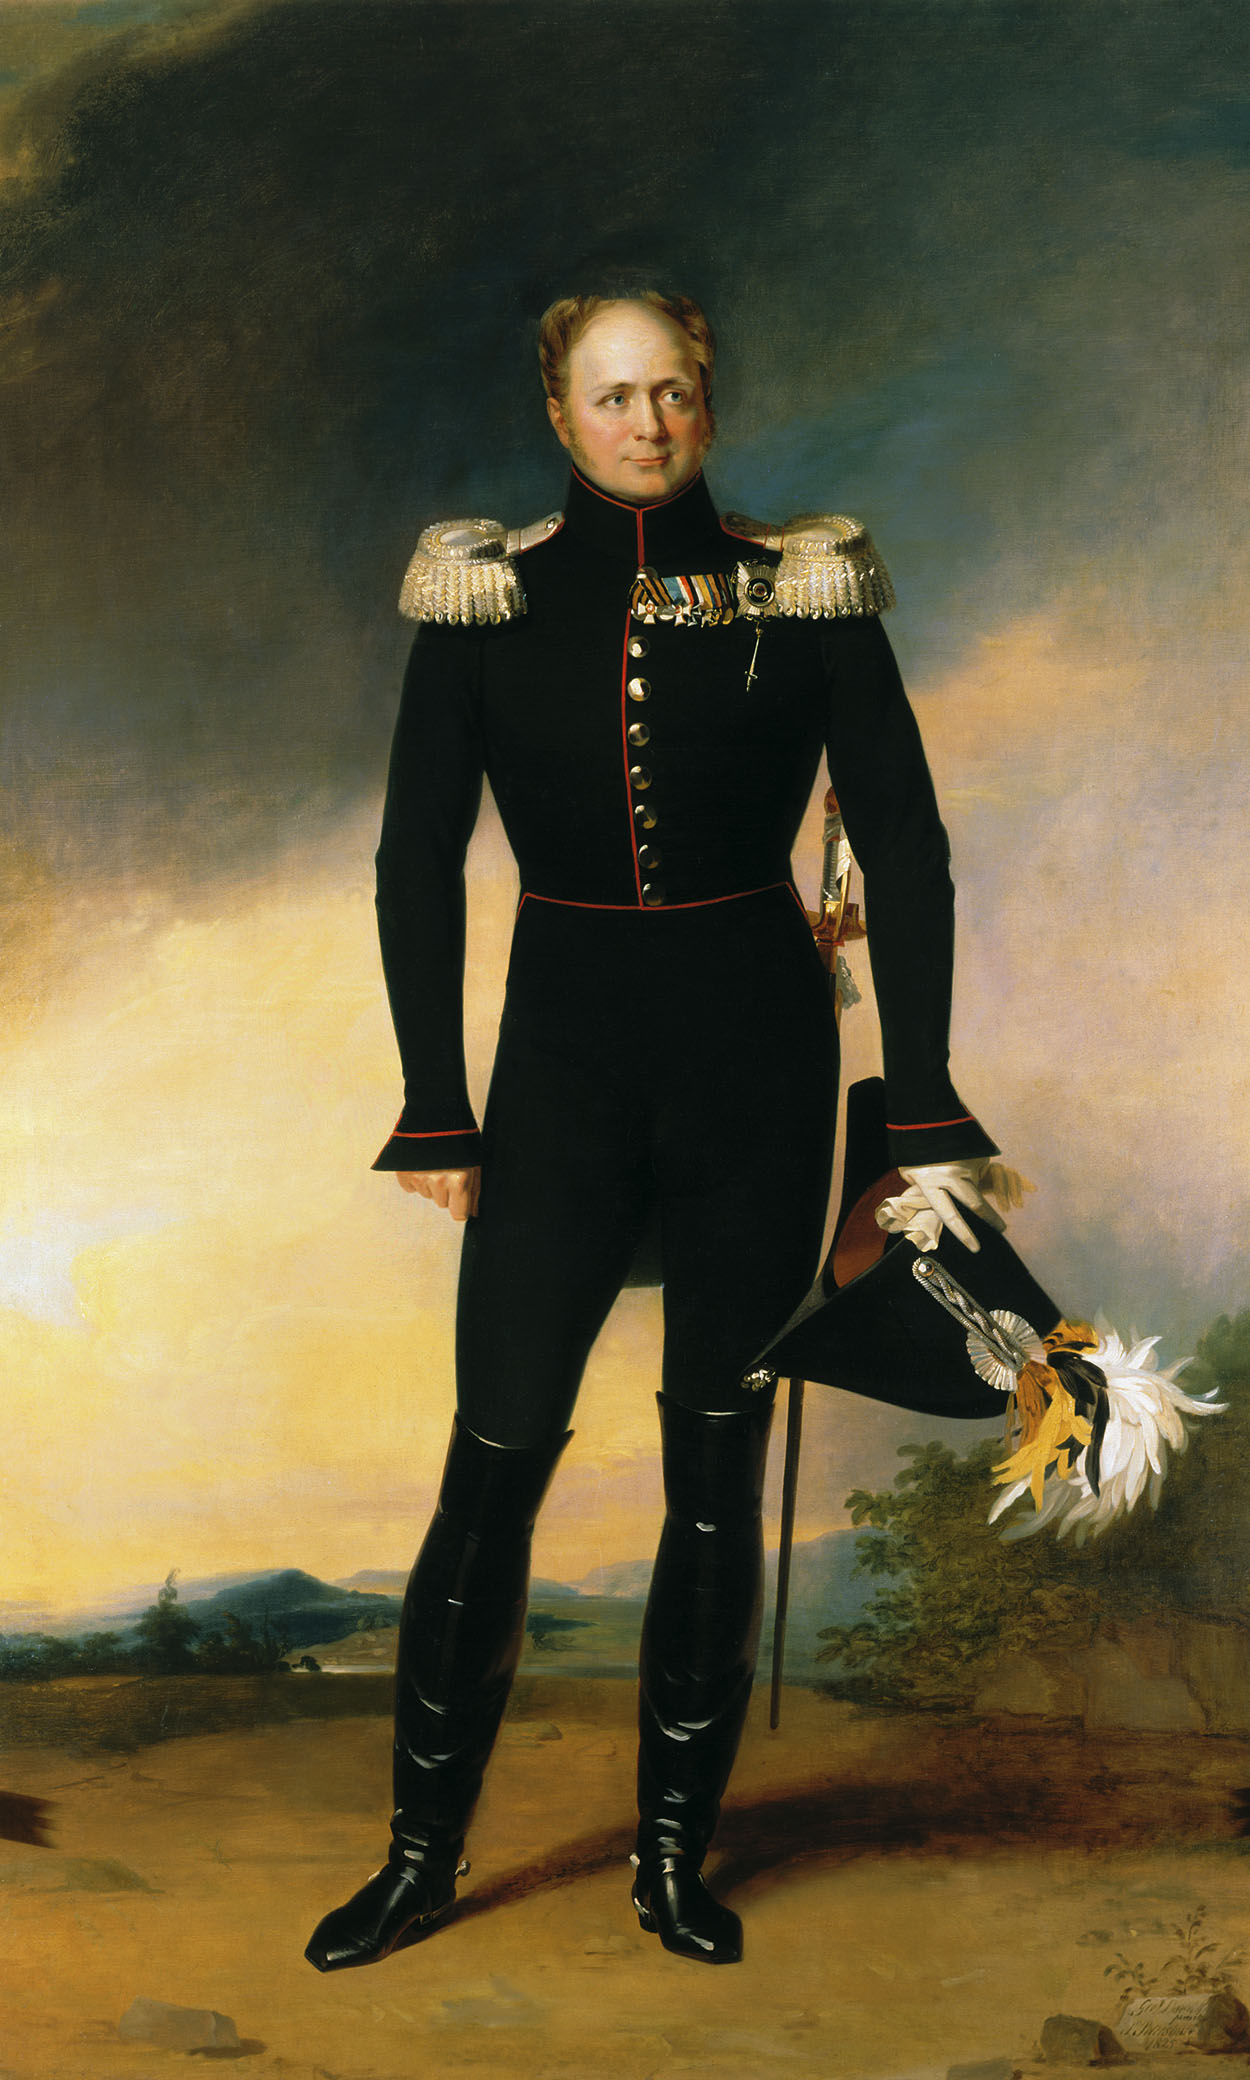 Alexander_I_of_Russia_by_G.Dawe_(1826%2C_Peterhof).jpg